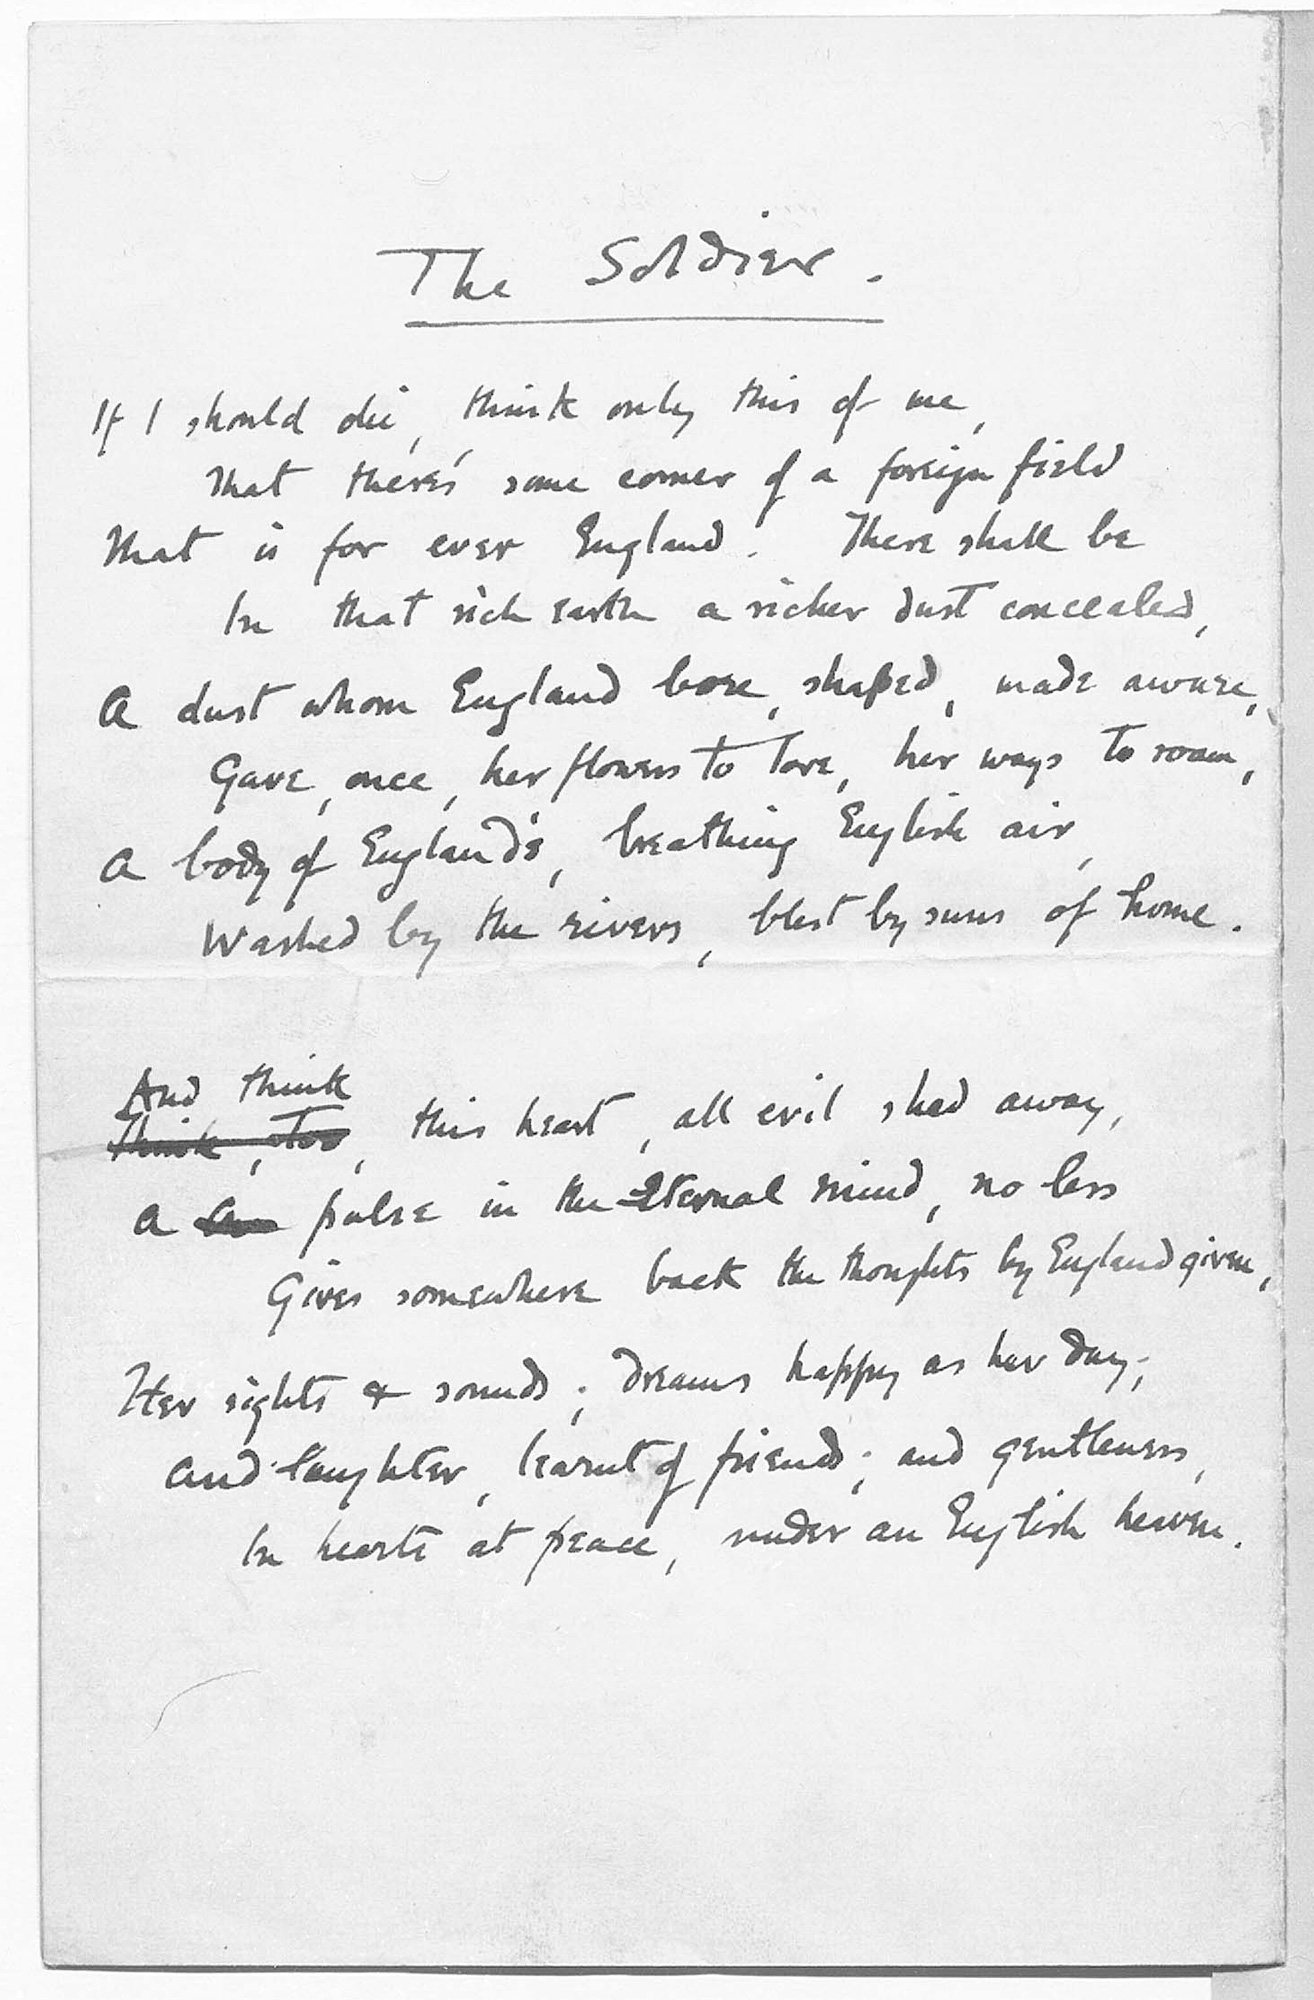 Rupert Brooke's The Soldier was one of the most famous poems written during the war.